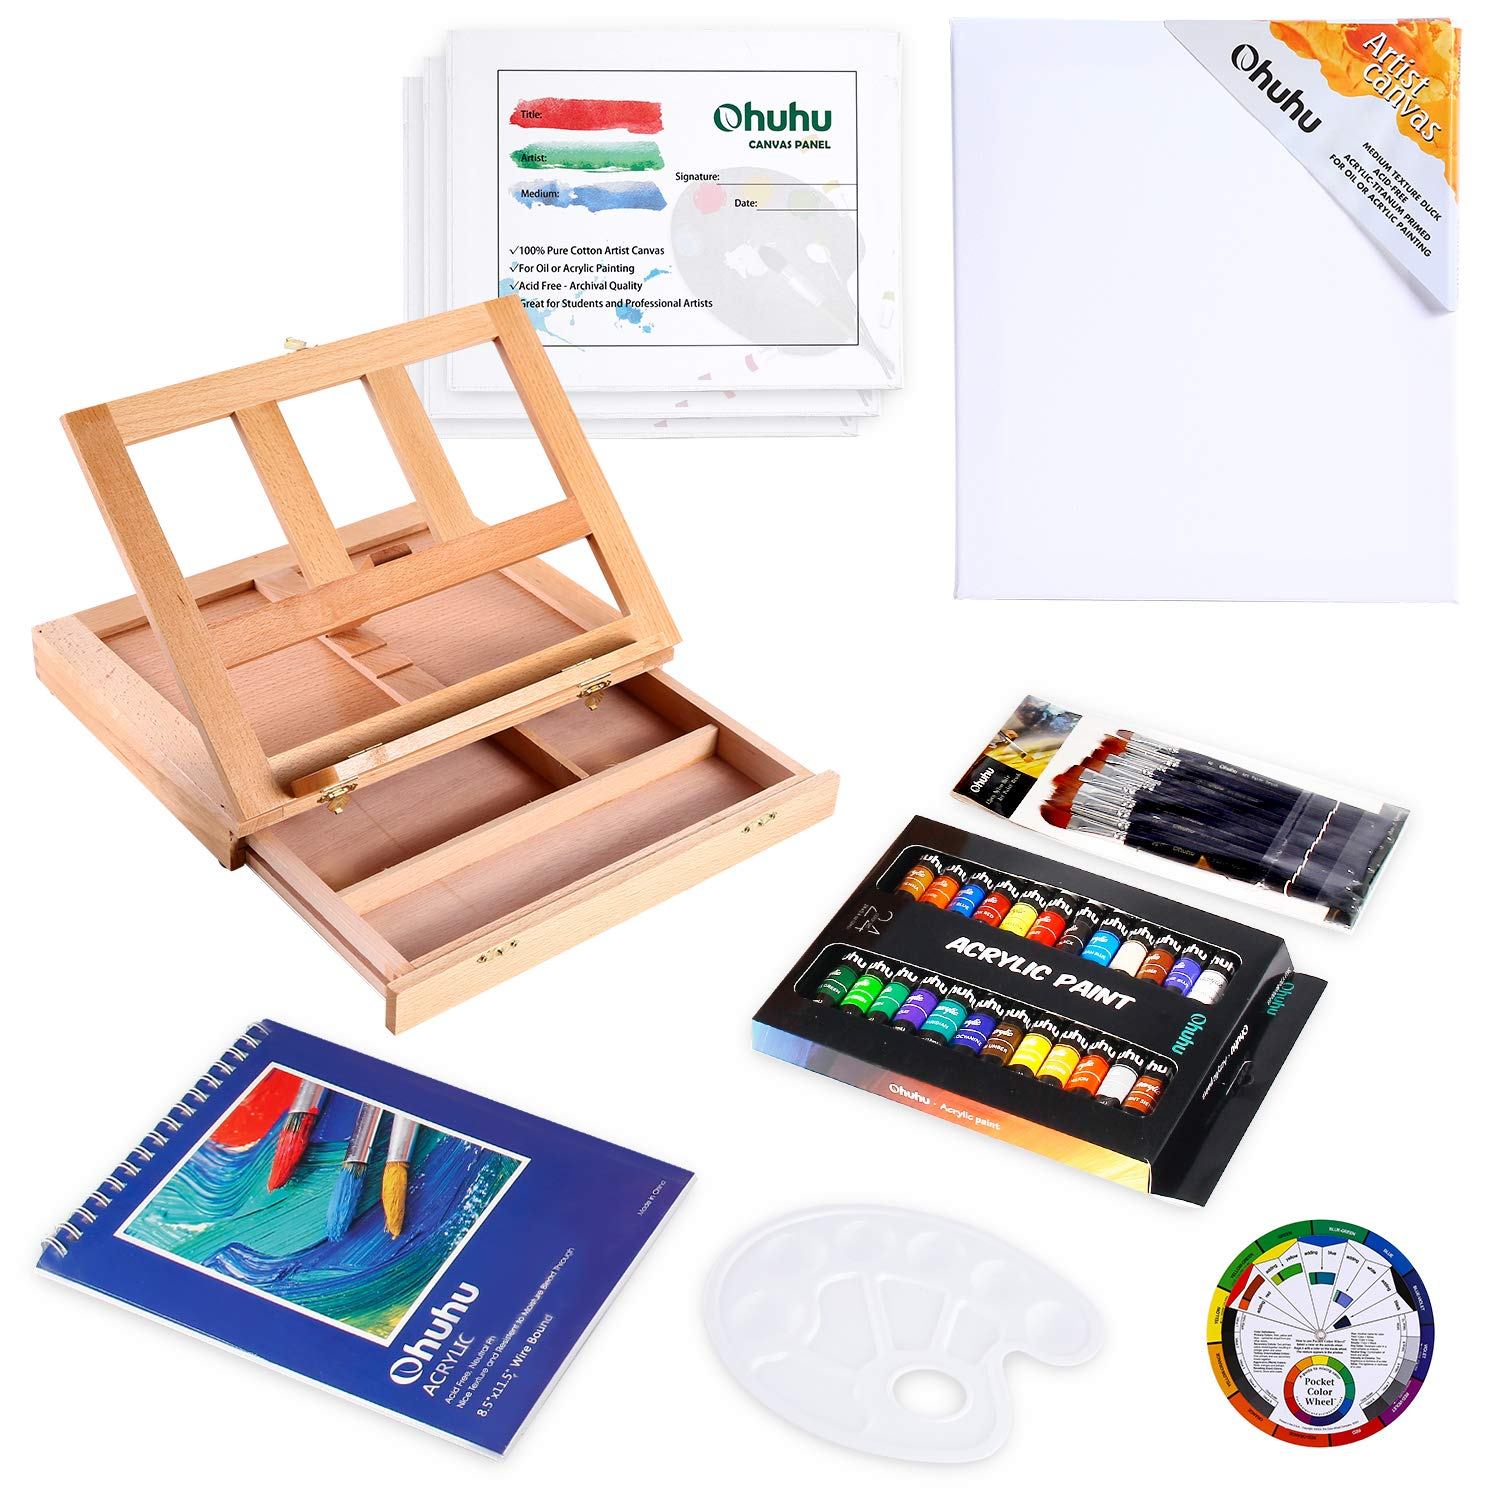 Acrylic Painting Set, 44pcs Ohuhu Artist Set with Wood Table-Top Easel Box, Art Painting Brushes, Acrylic Paint Tubes, and Acrylic Painting Pads for Artist Students Beginners by Ohuhu